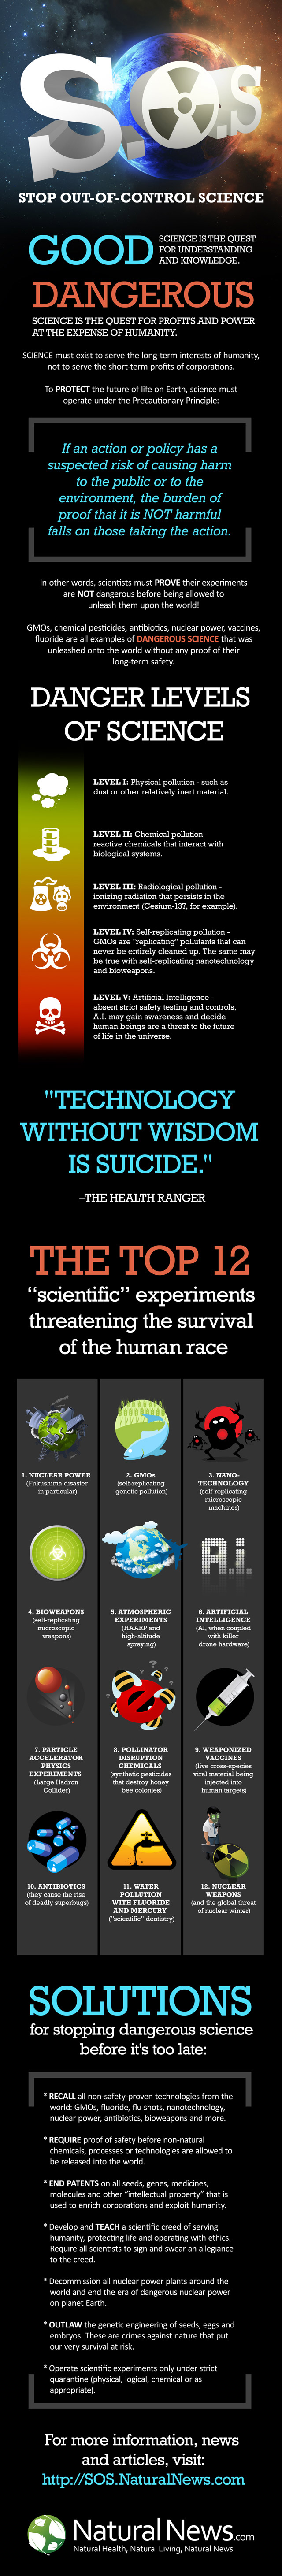 Infographic-SOS-Stop-Out-of-Control-Science